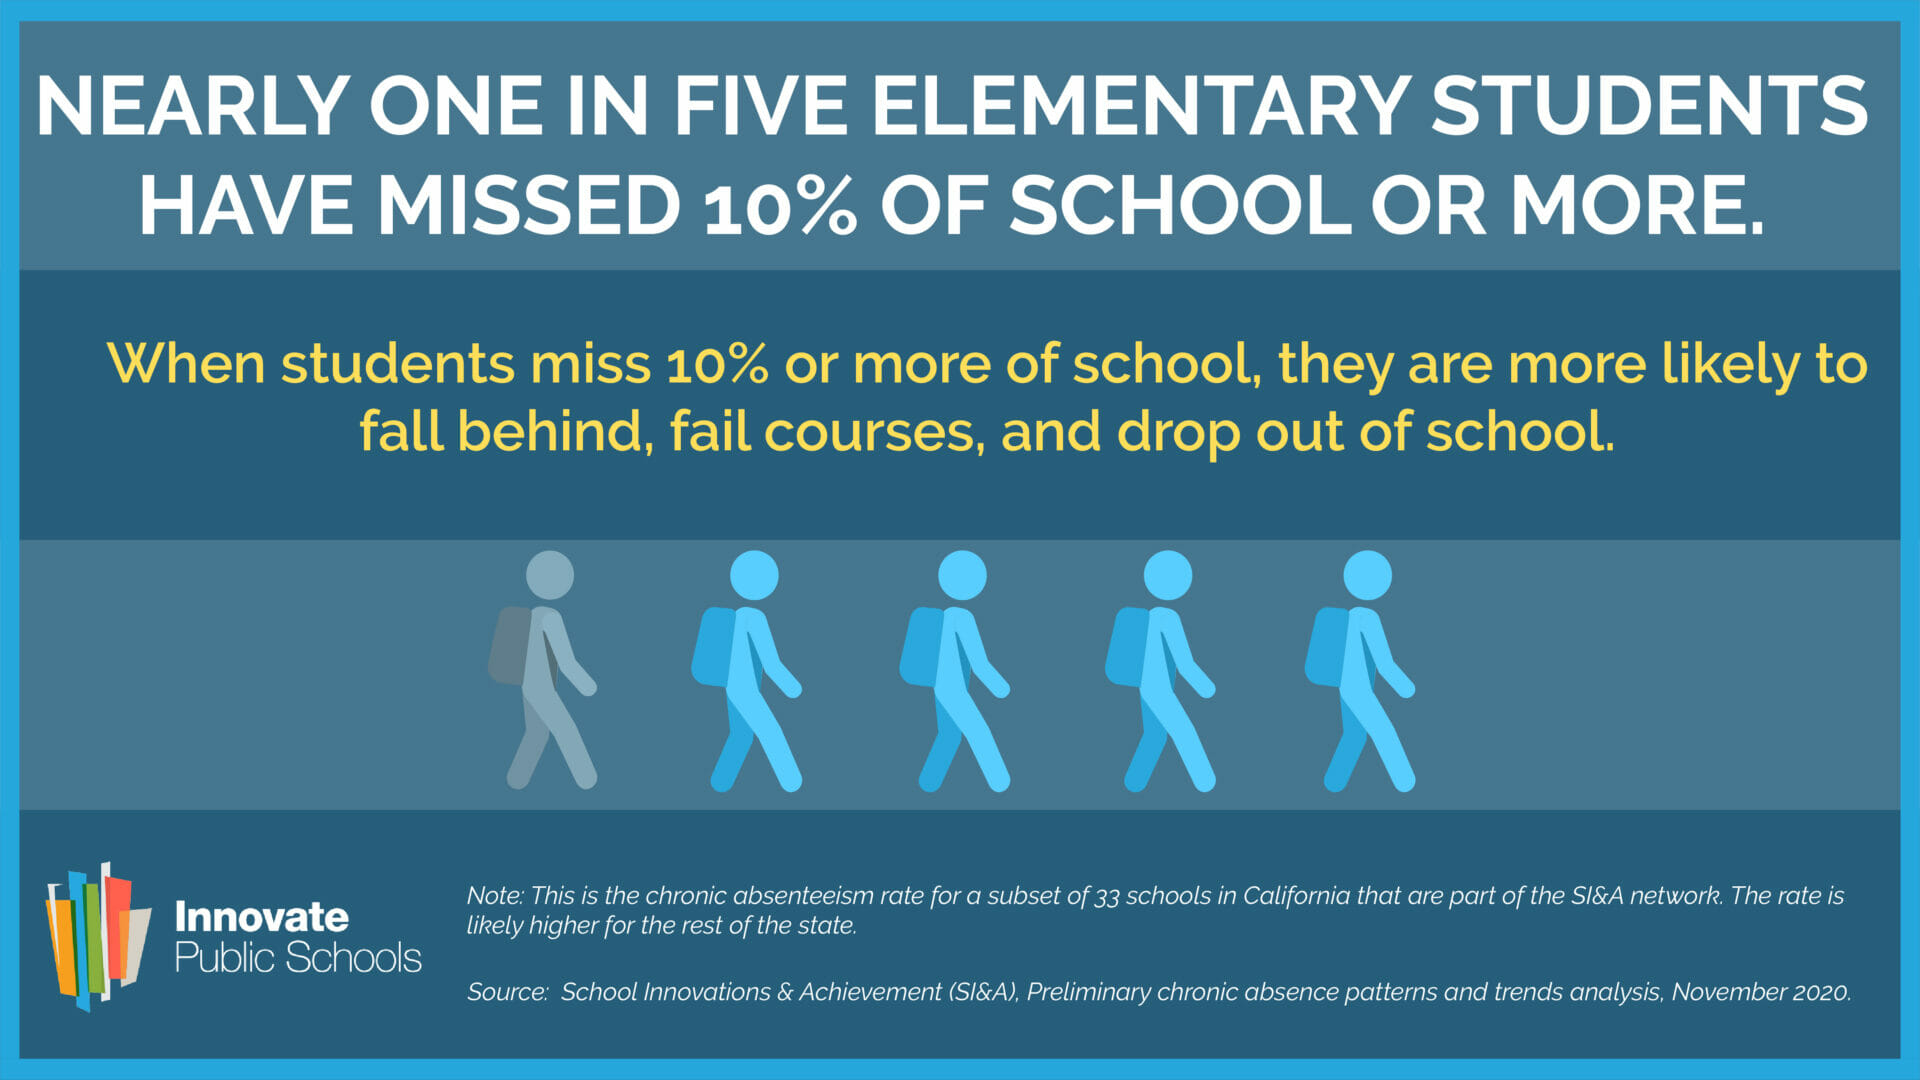 Nearly One in Five Elementary Students Missed a Tenth of School